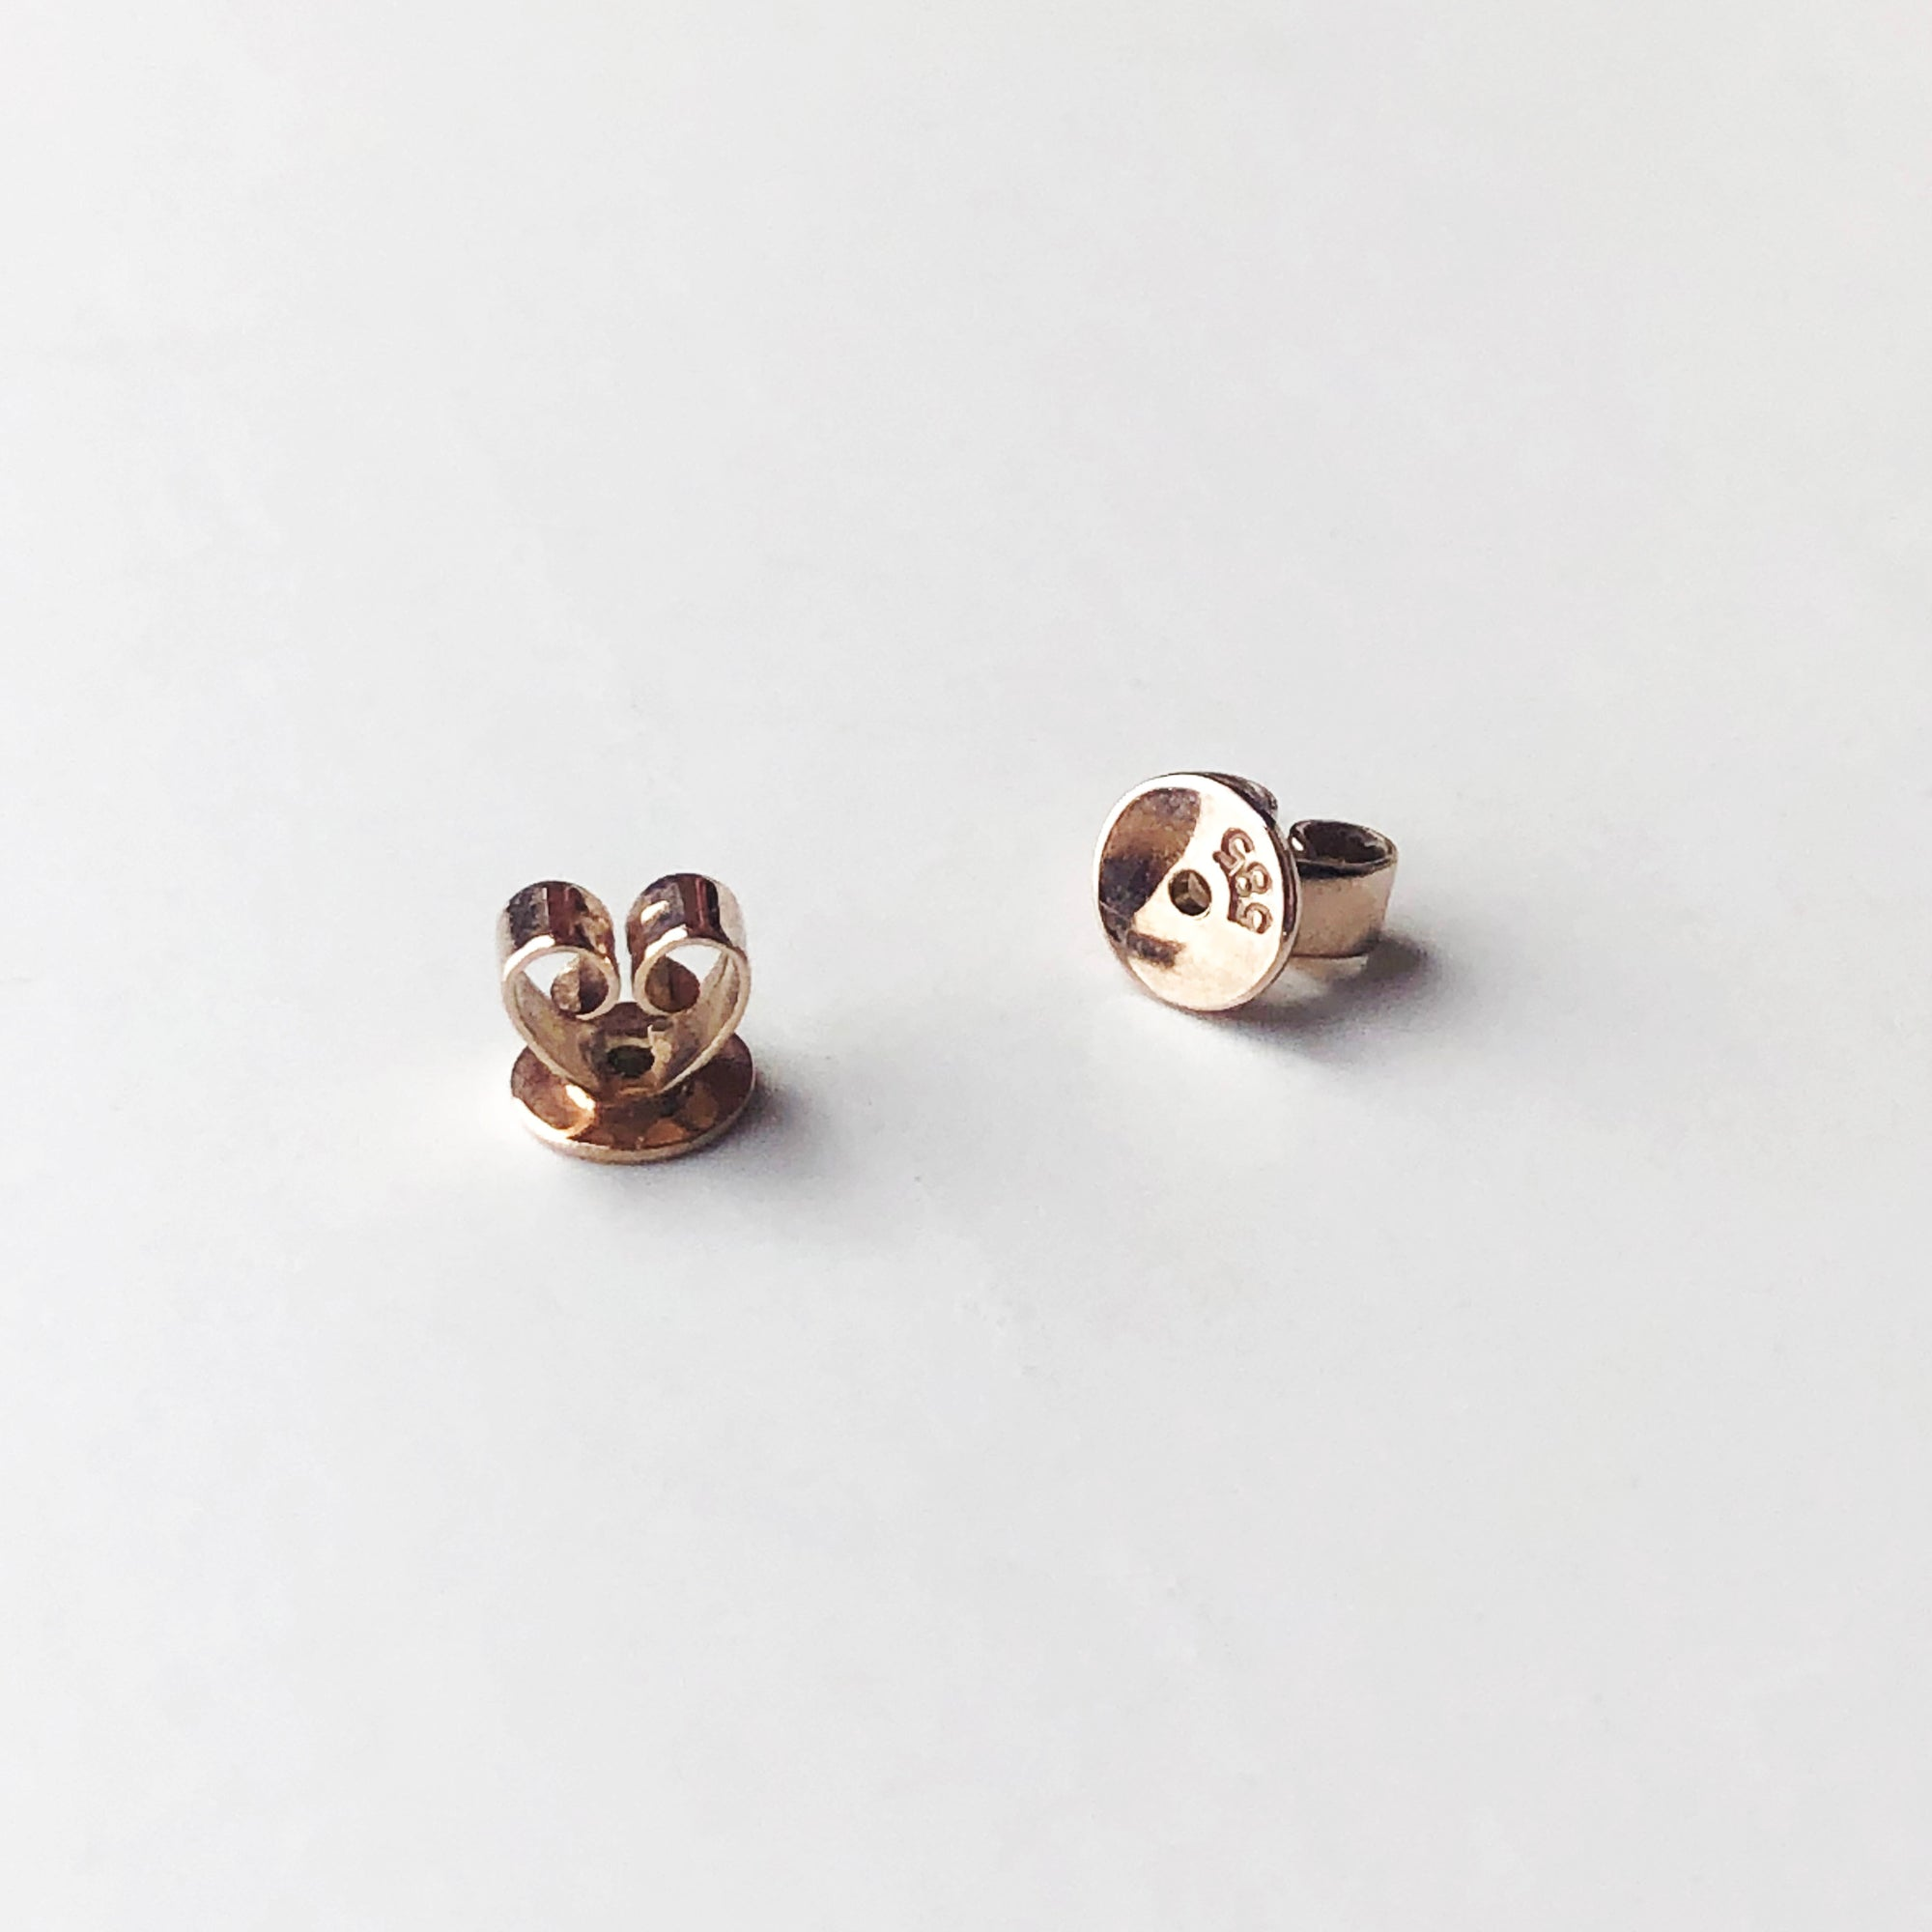 14K Gold Earring Backing